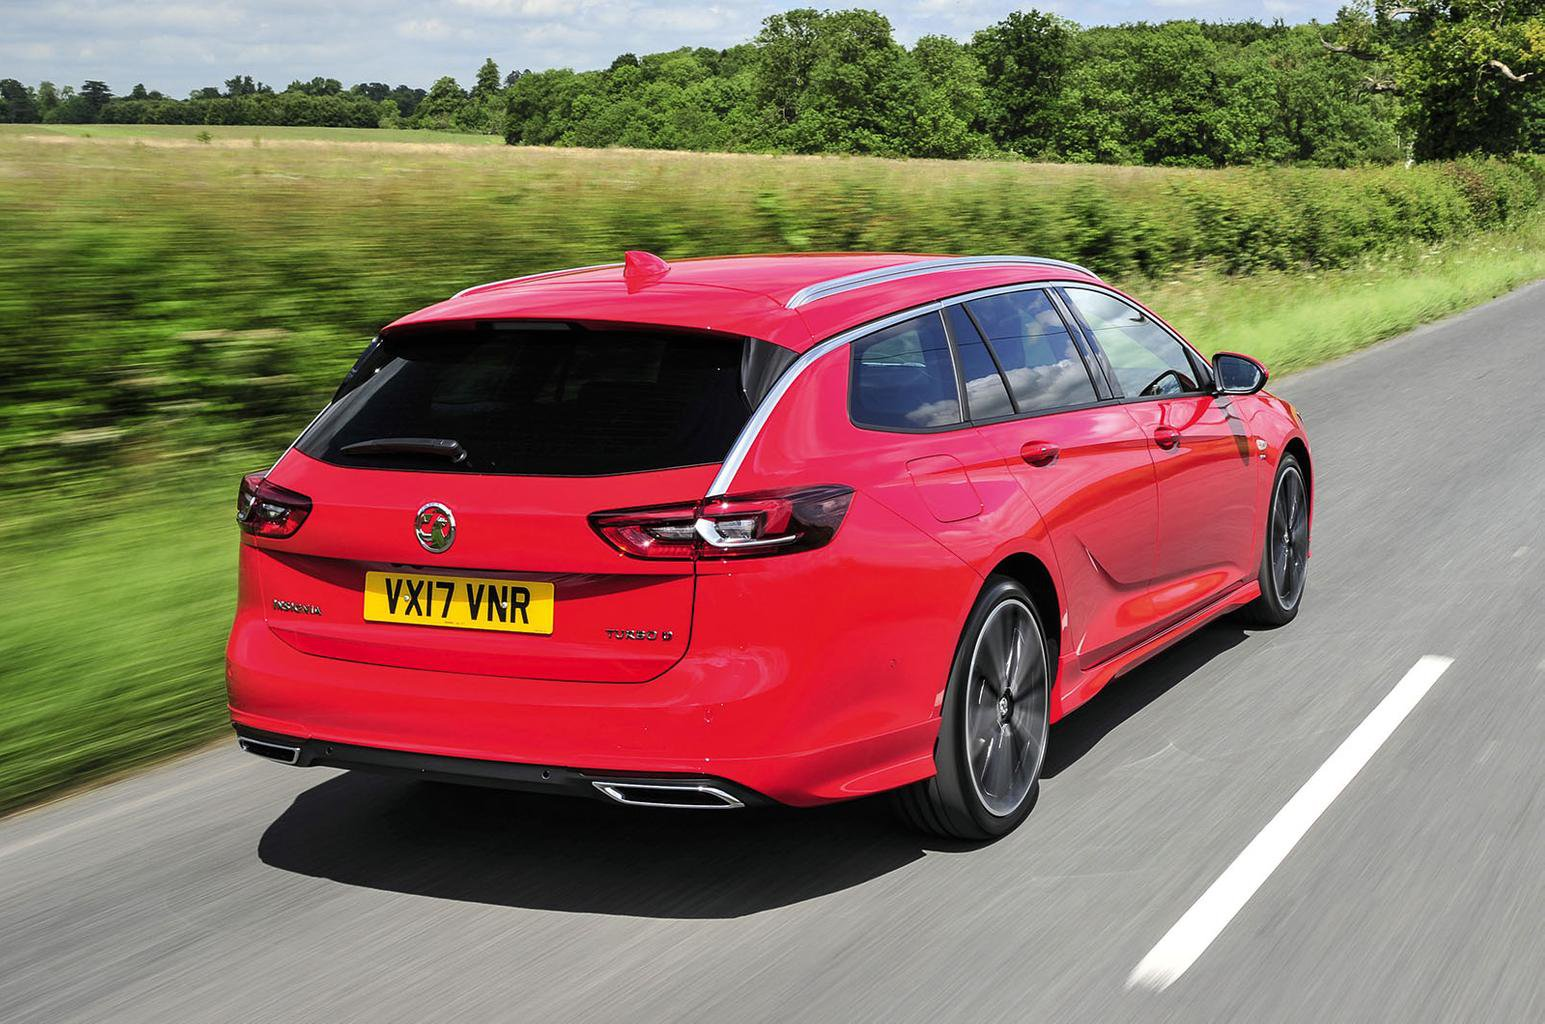 Used Vauxhall Insignia Sports Tourer 17-Present